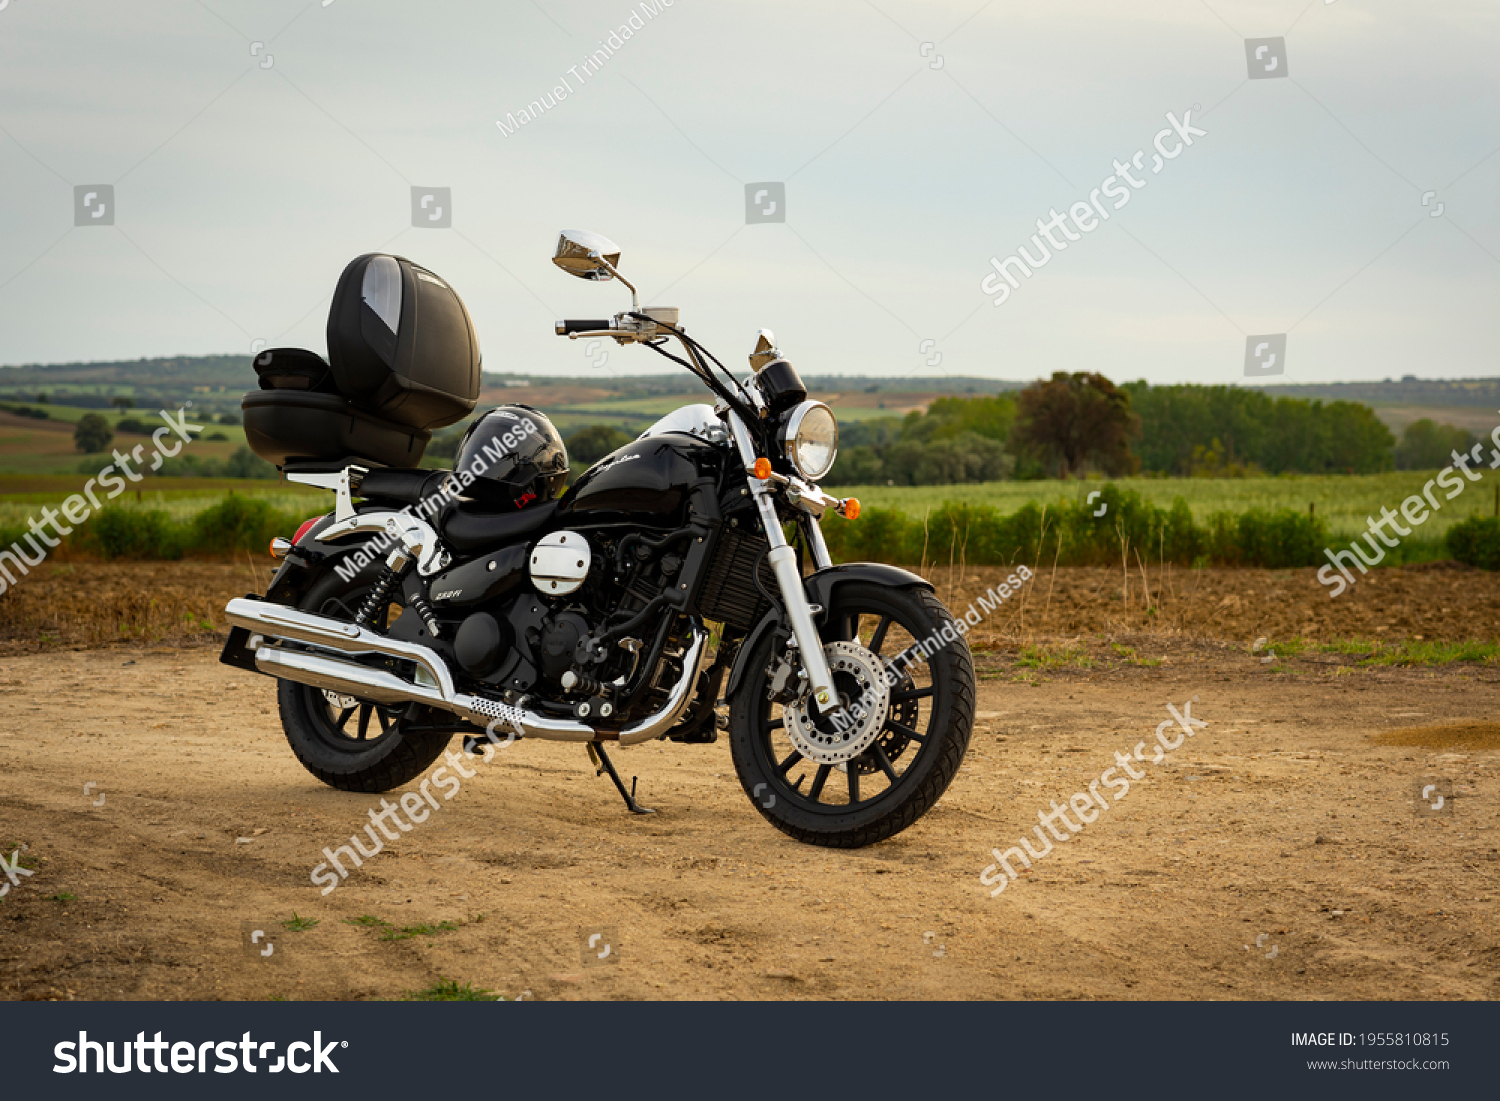 Cadiz, Andalusia, Spain, April 13, 2021 Daelim Daystar 250 fi motorcycle, in the field, with open suitcase and helmet on the seat